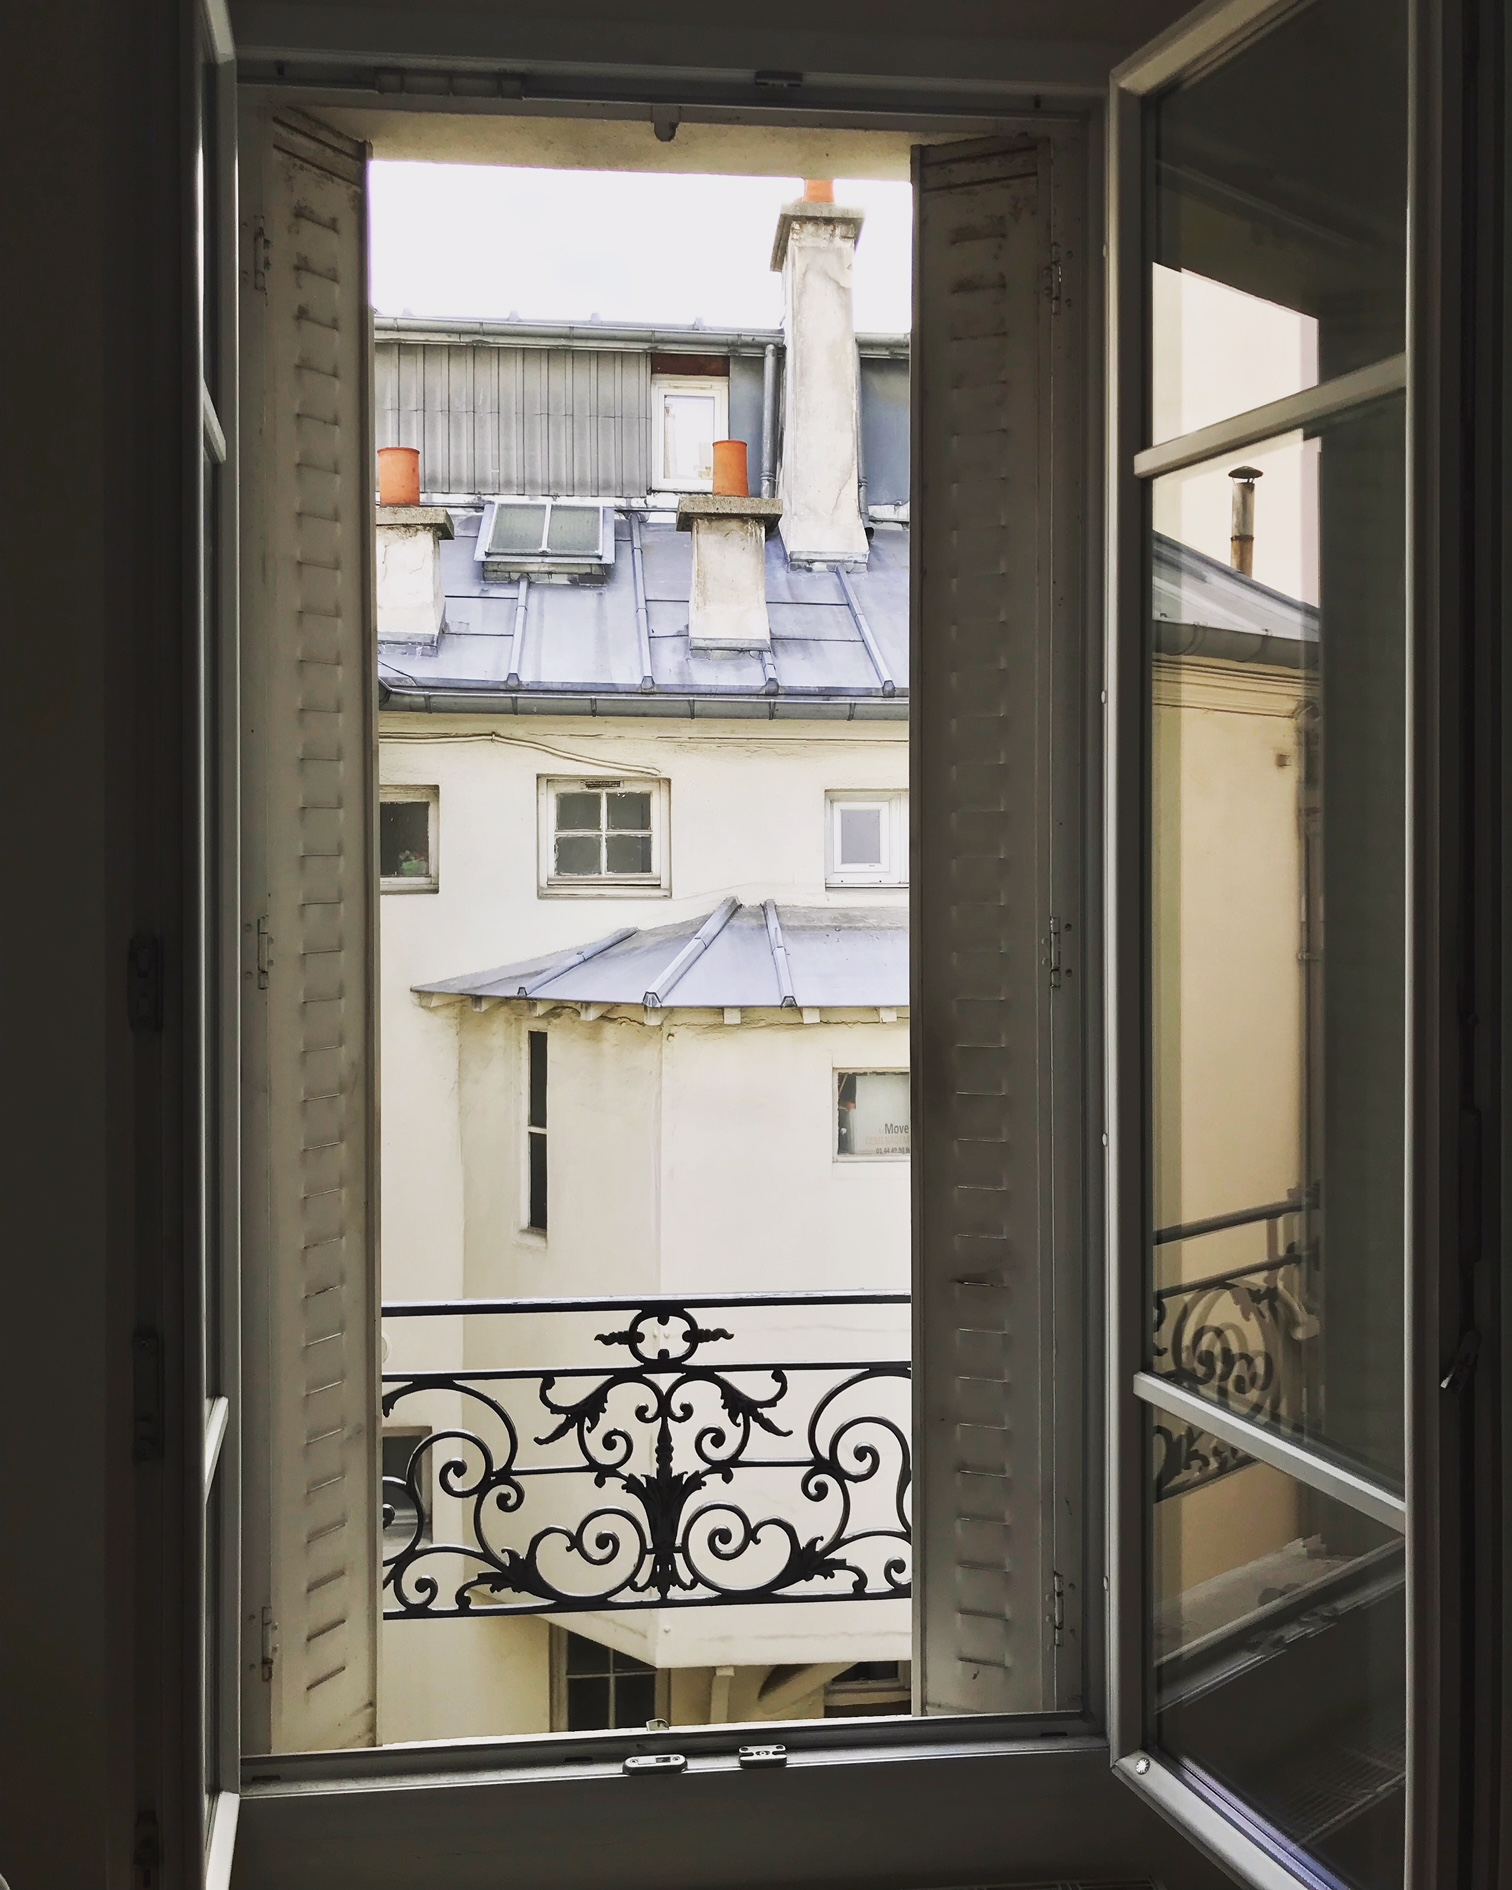 Parisian window